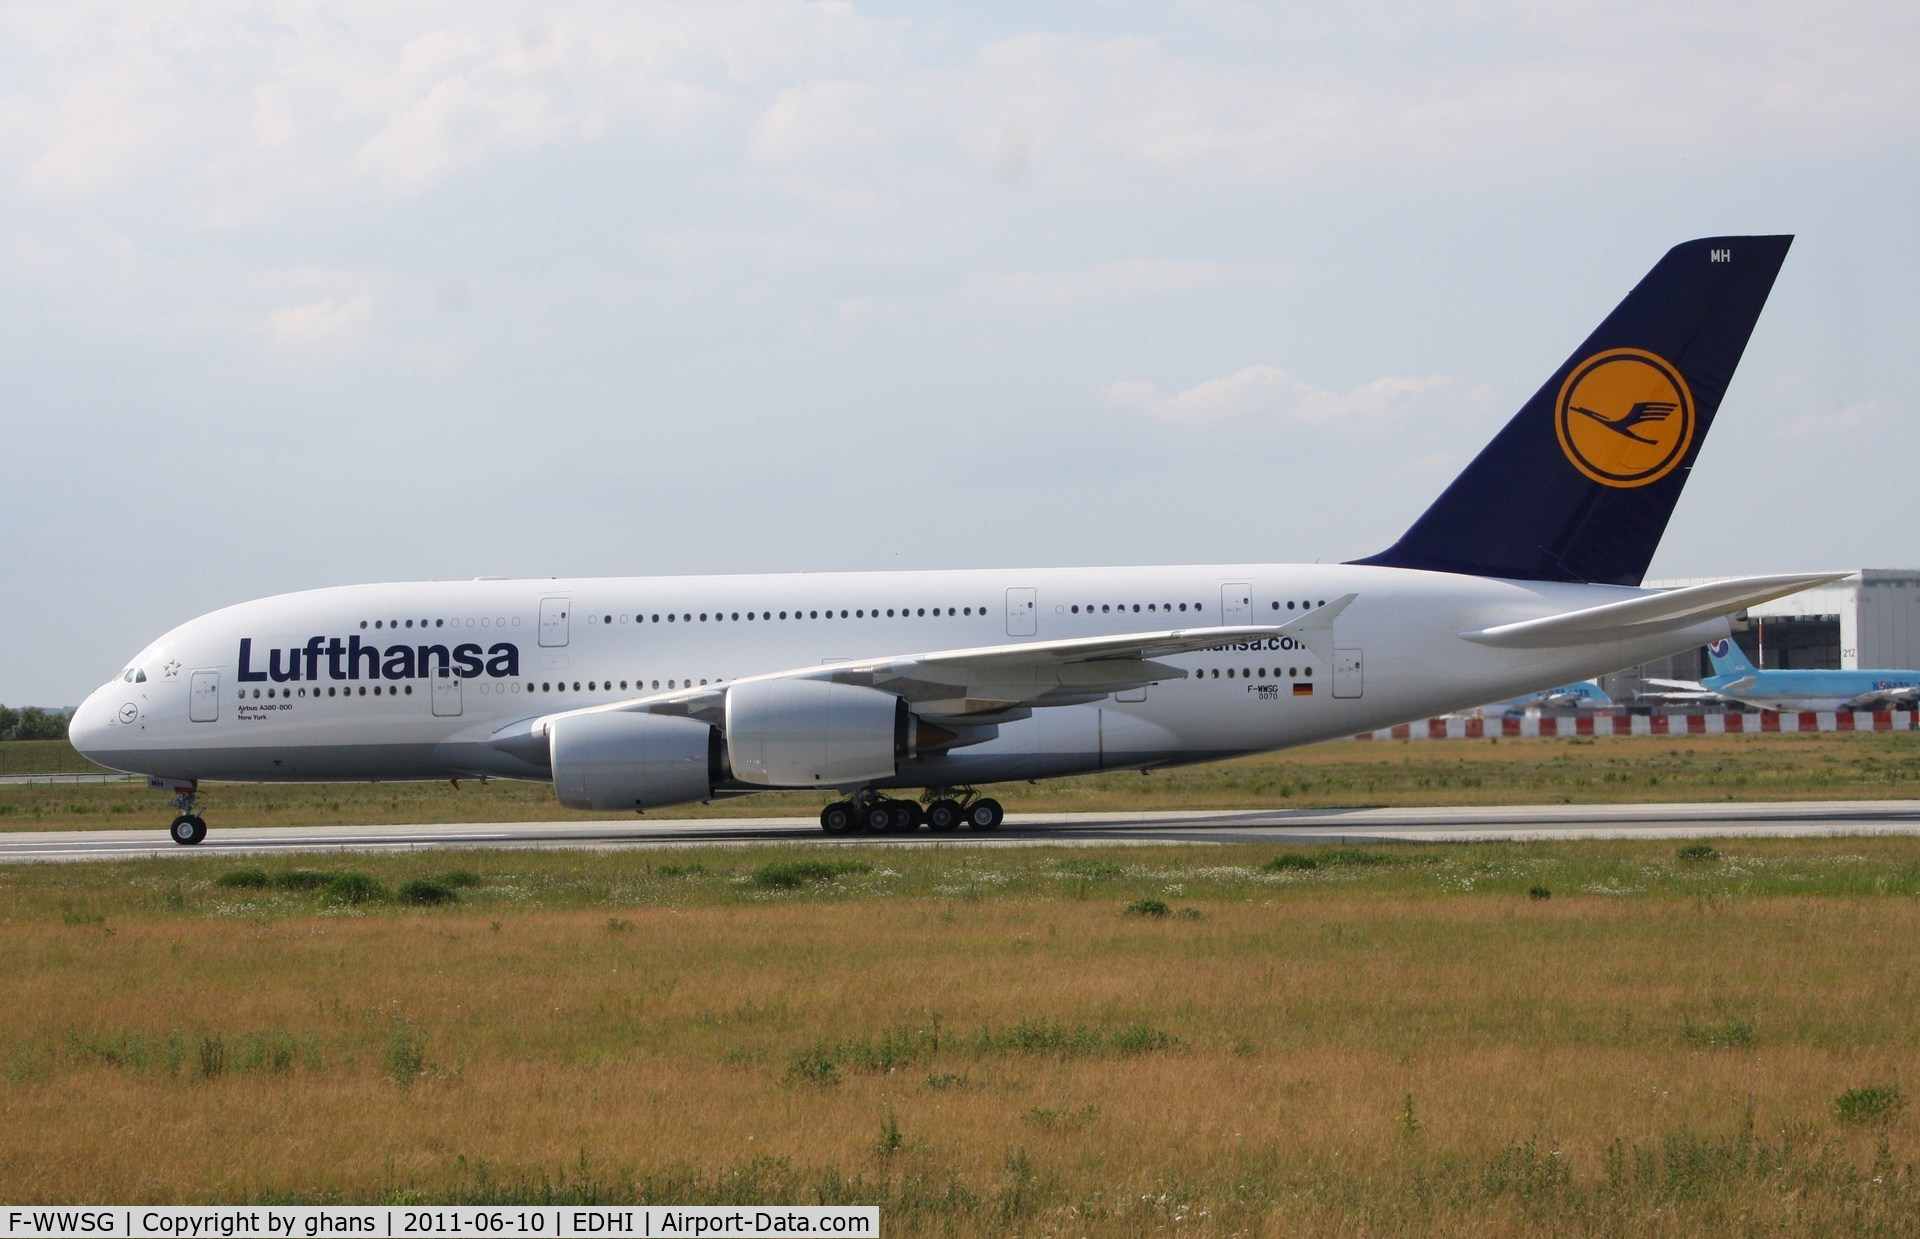 F-WWSG, 2010 Airbus A380-841 C/N 070, to become D-AIMH